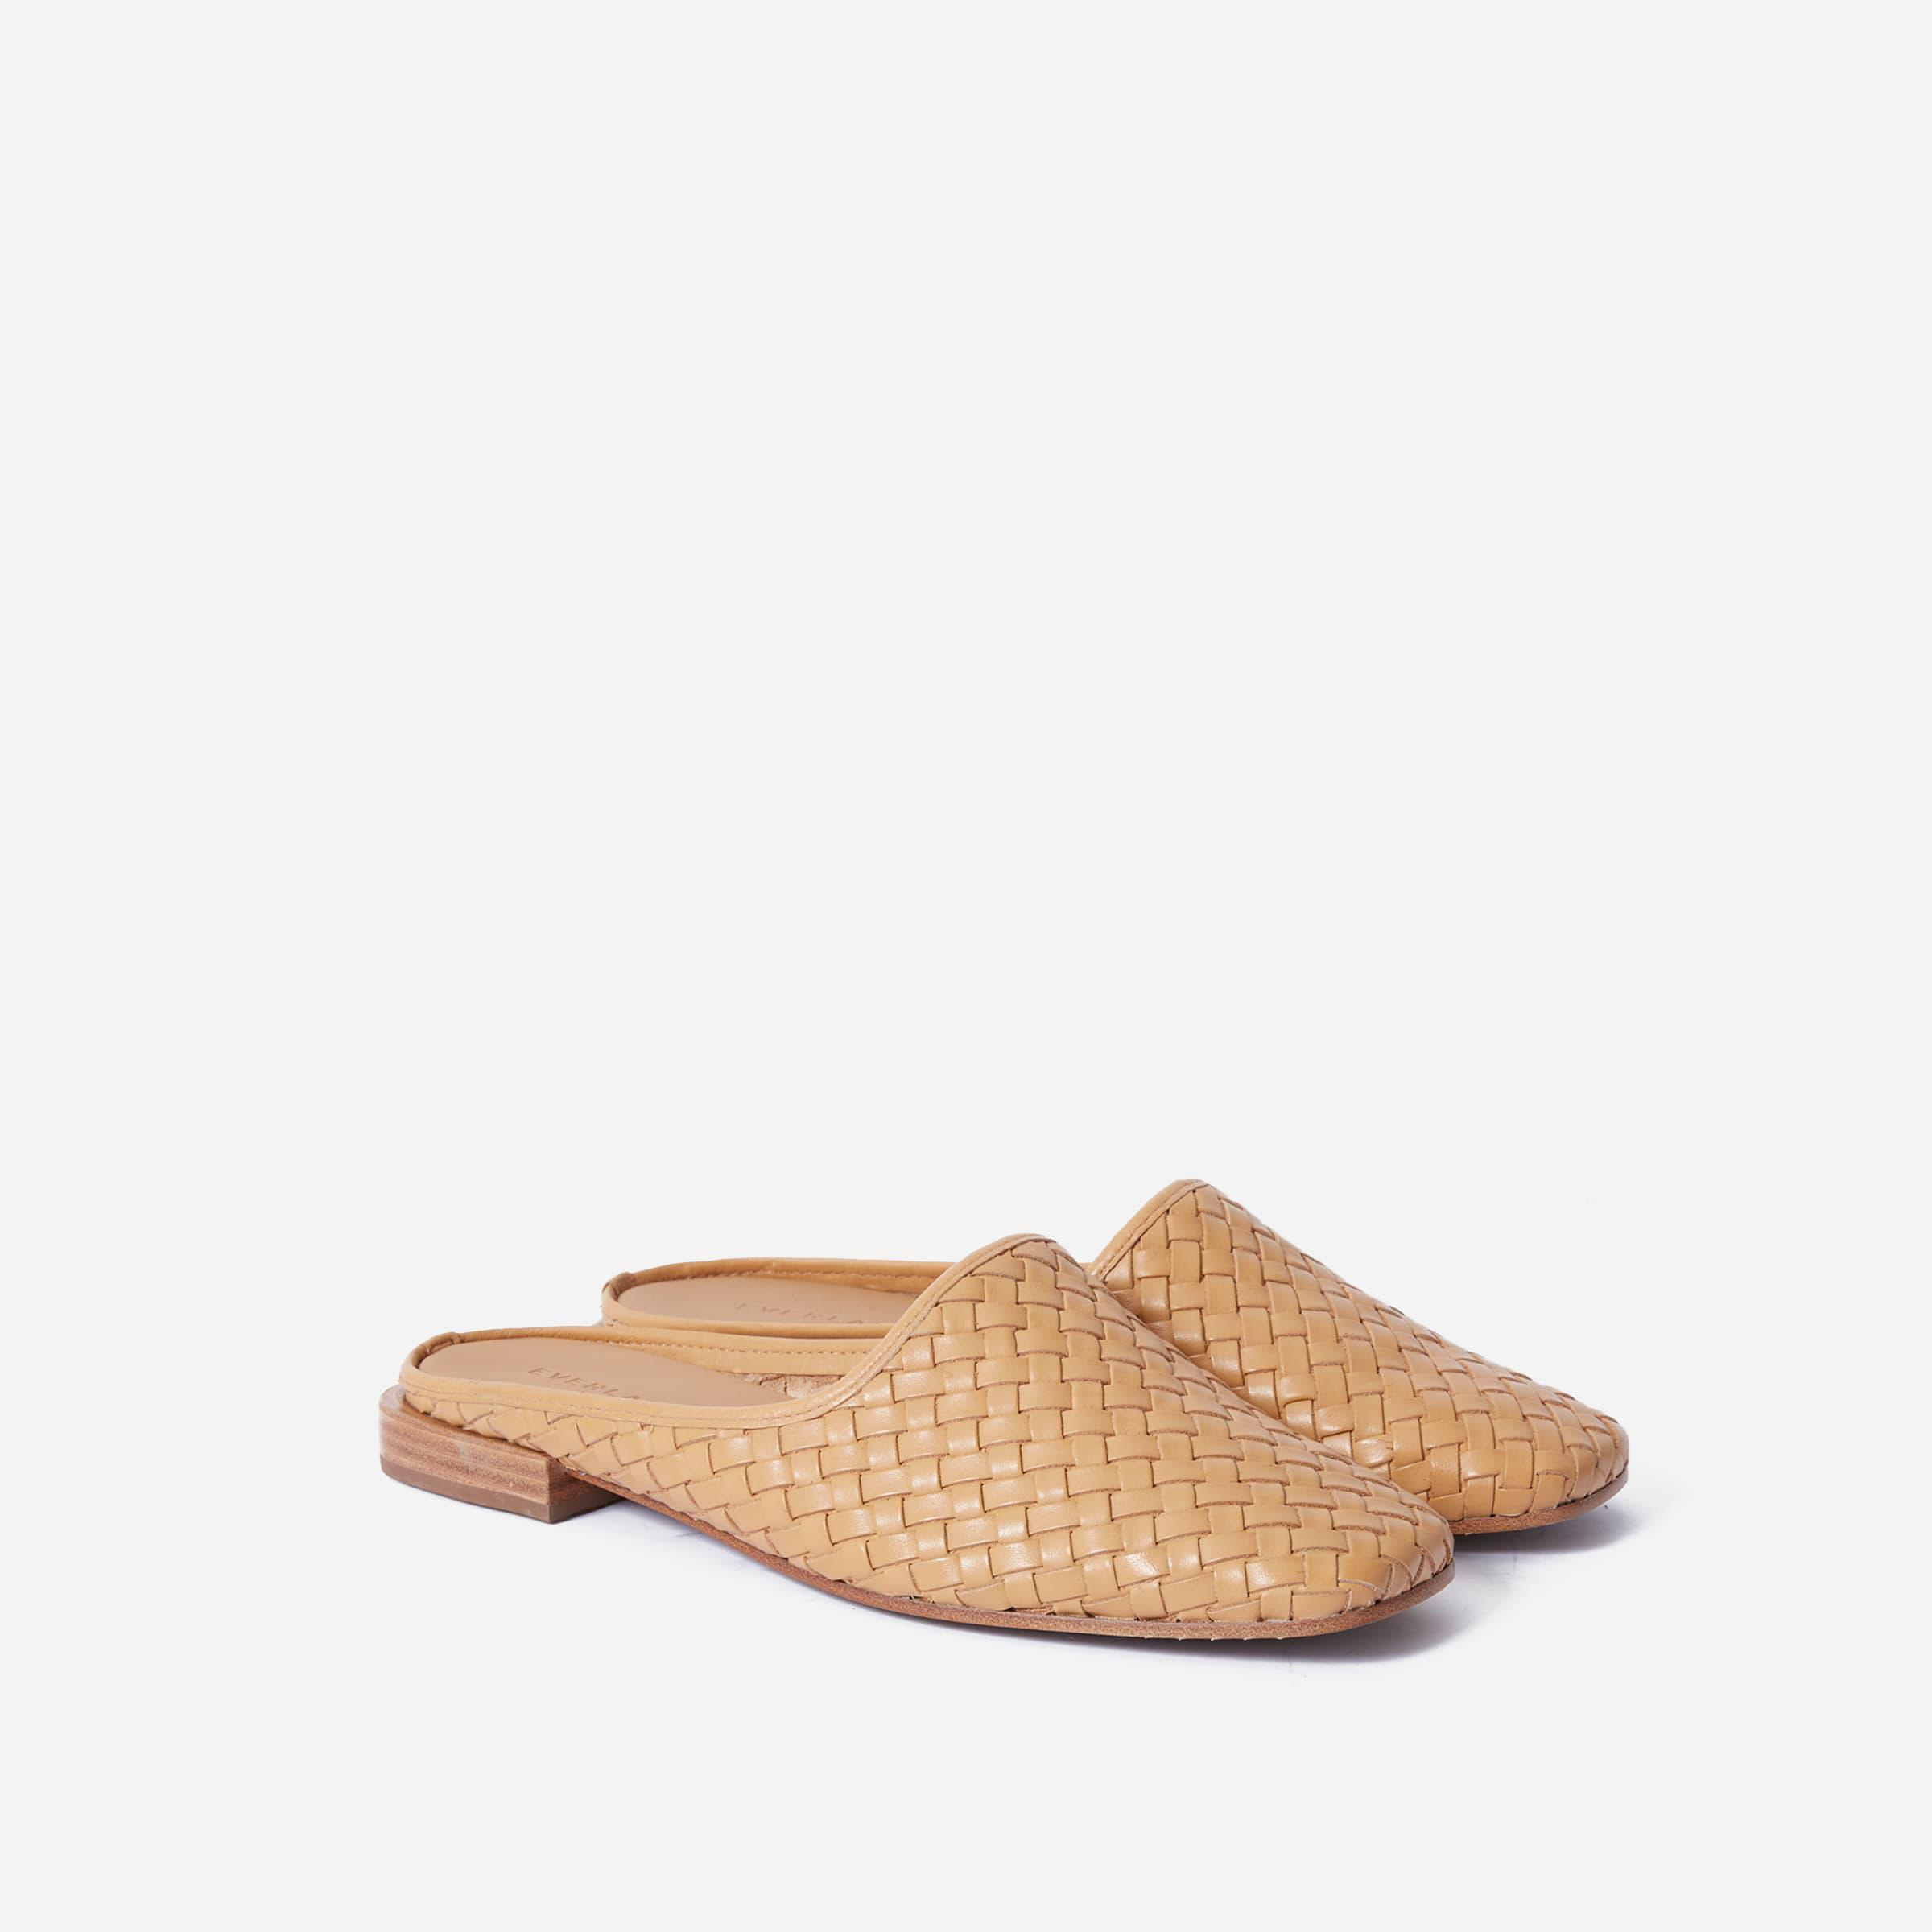 The Woven Leather Mule 1